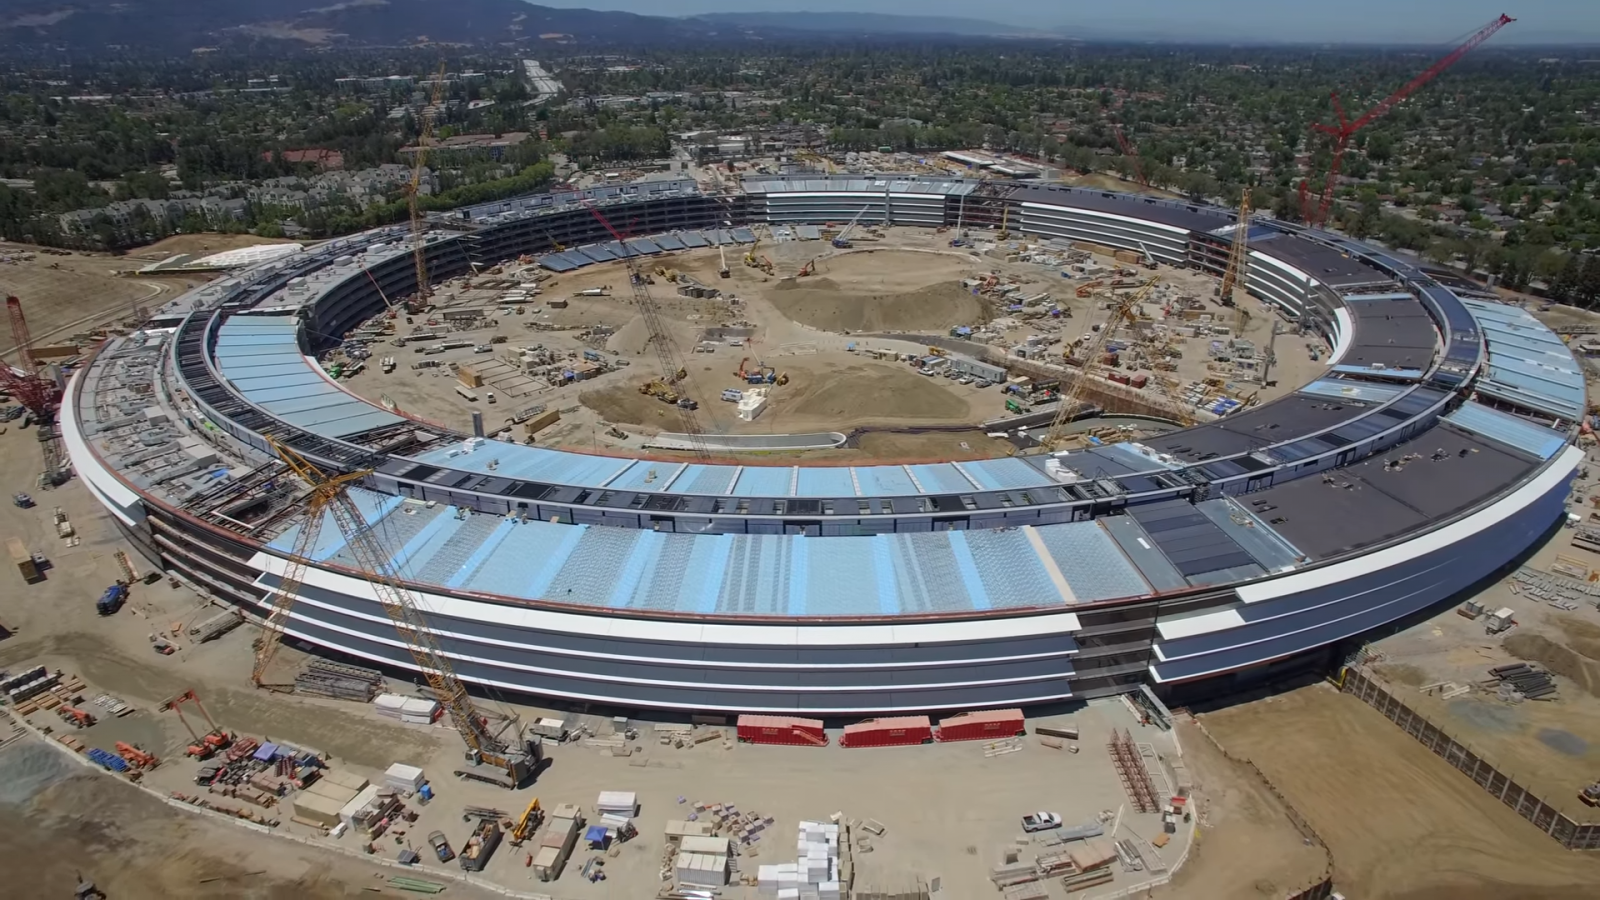 Apple Campus 2 July drone 4k image